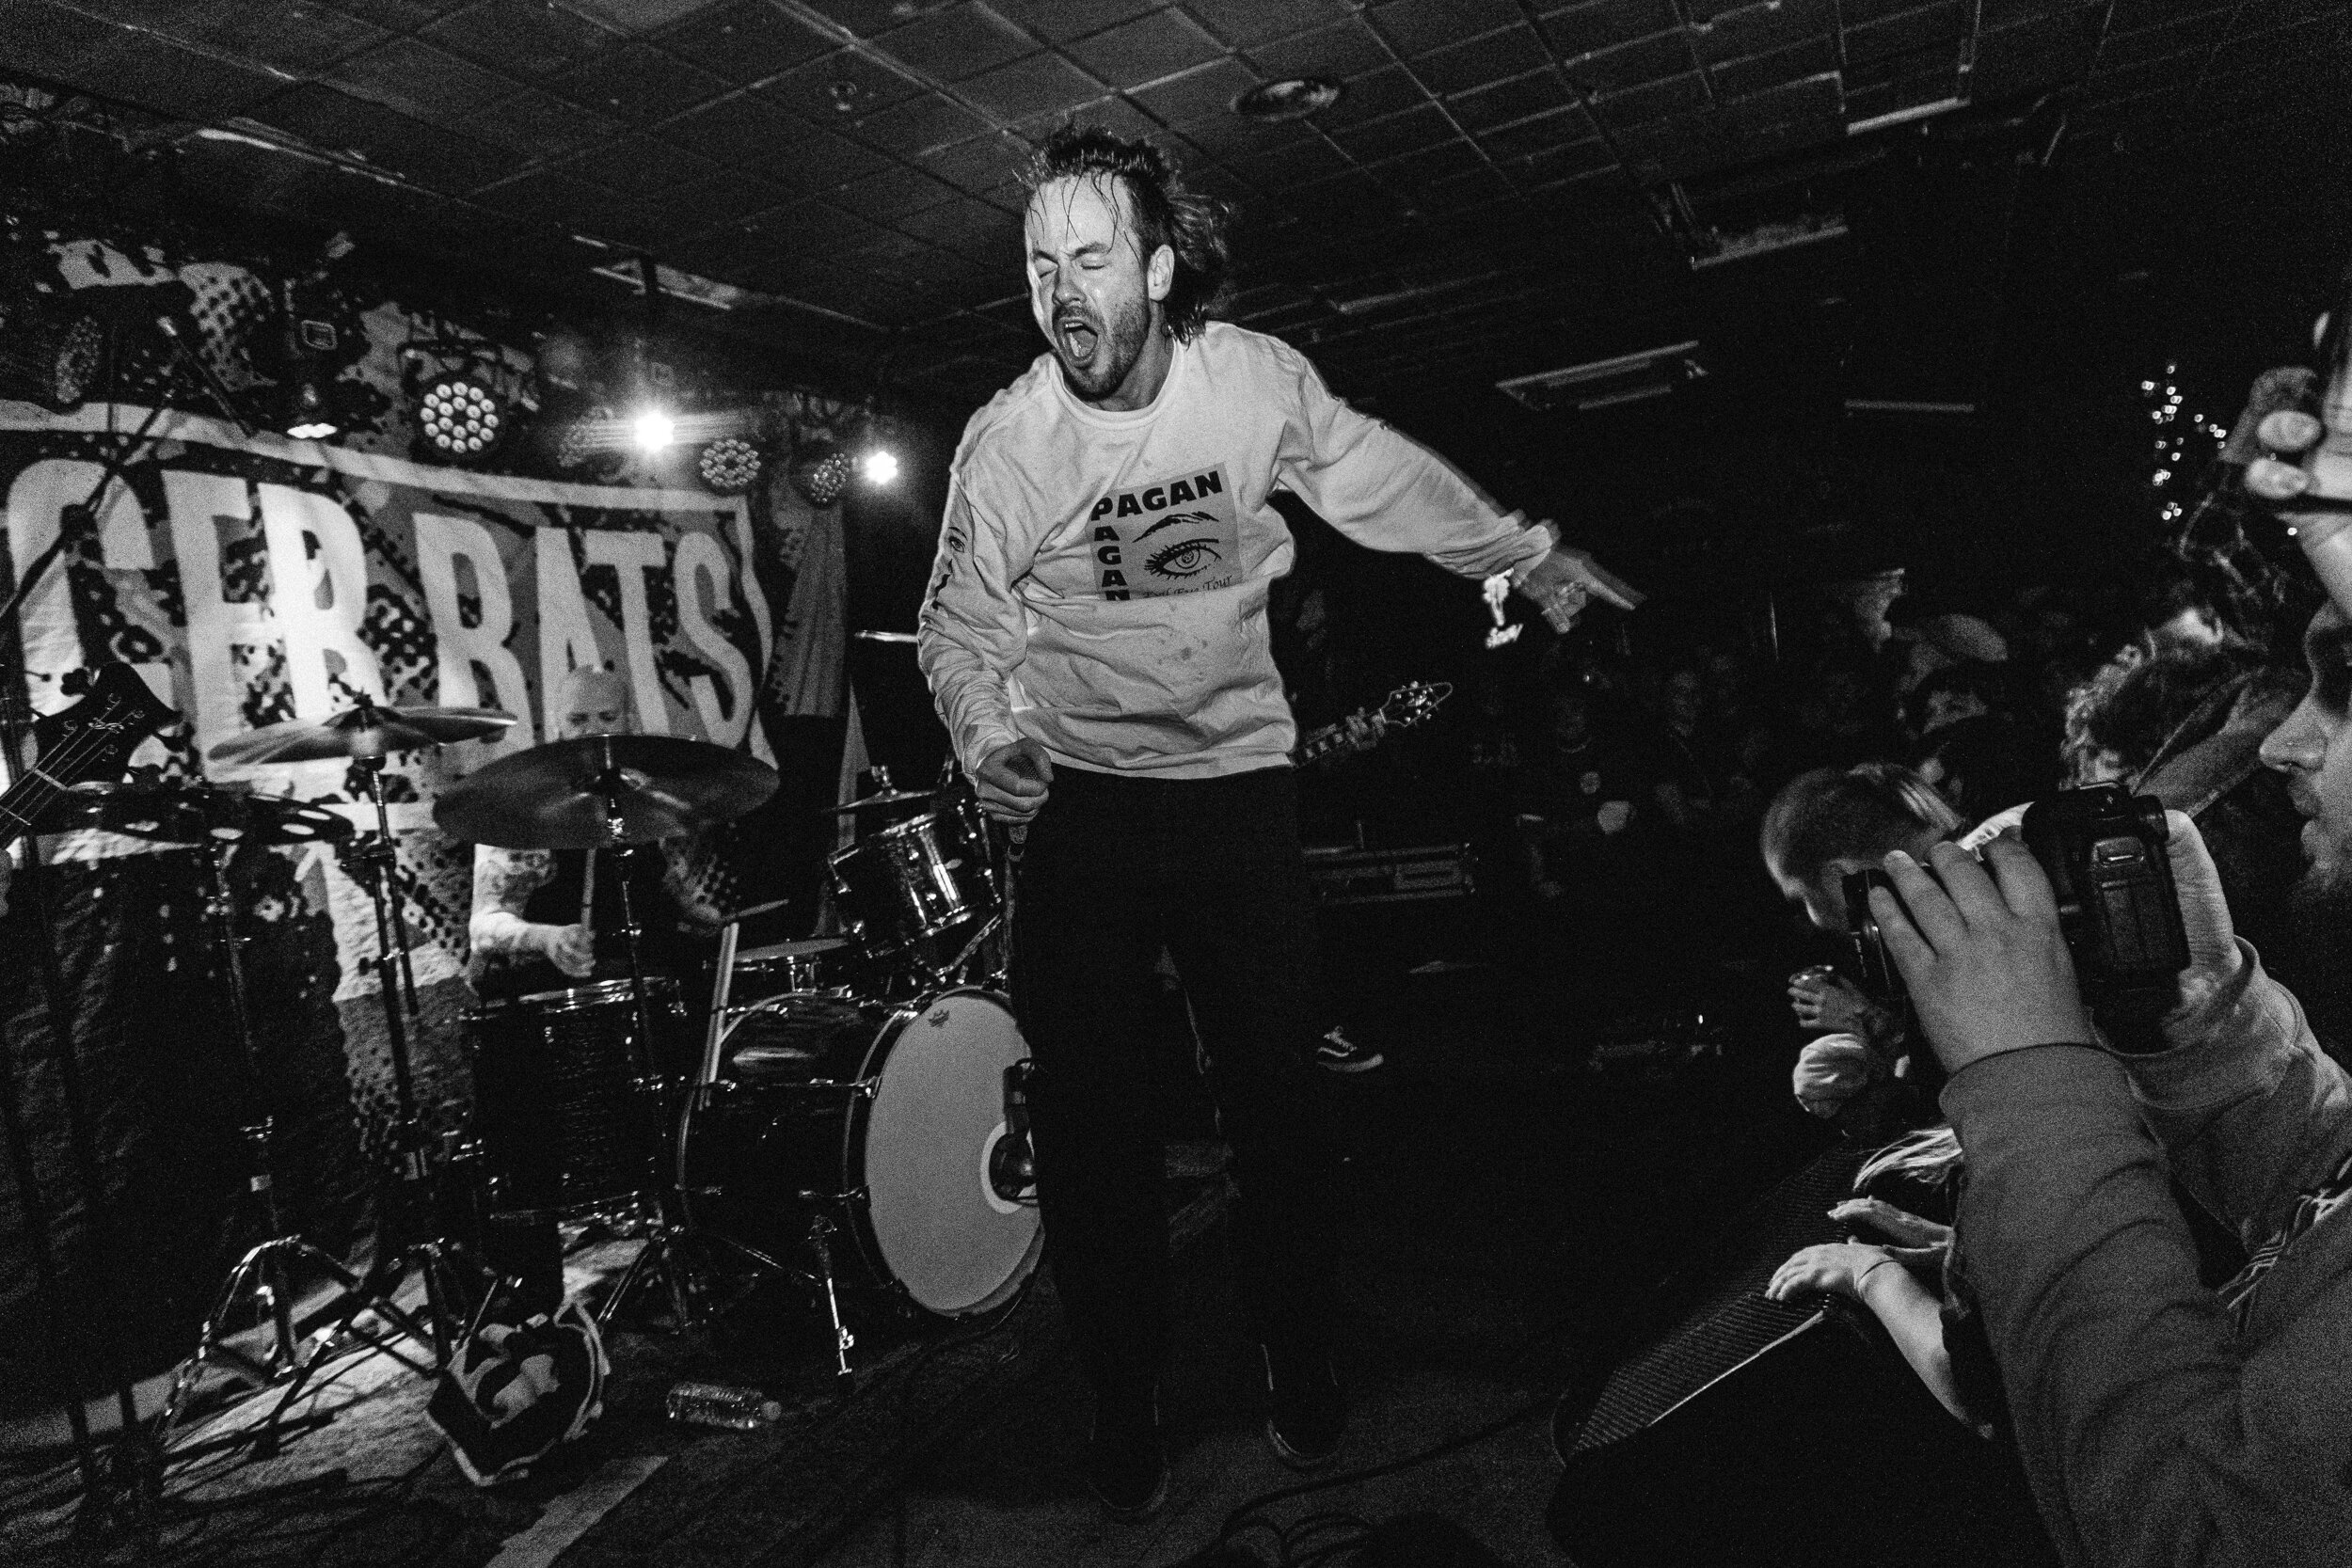 CancerBats_StayGold-3777.jpg